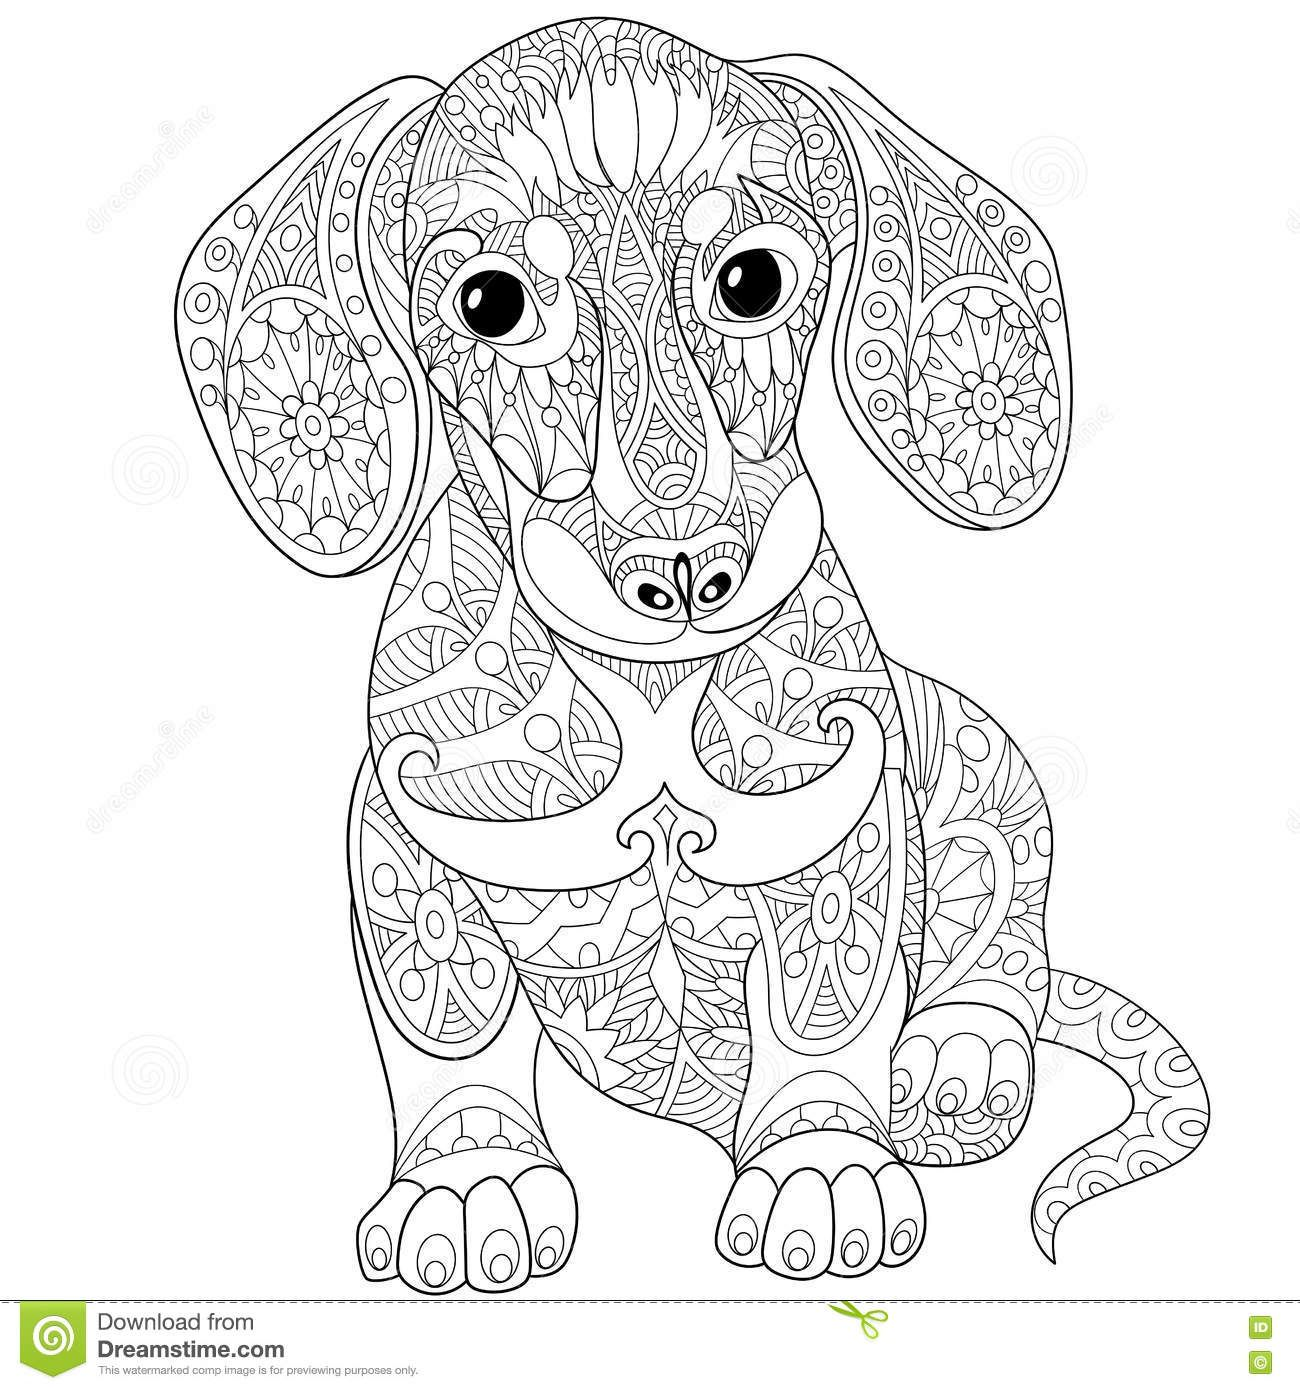 Zentangle Stylized Dachshund Dog Download From Over 51 Million High Quality Stock Photos Images Ve Dog Coloring Page Dachshund Colors Animal Coloring Pages